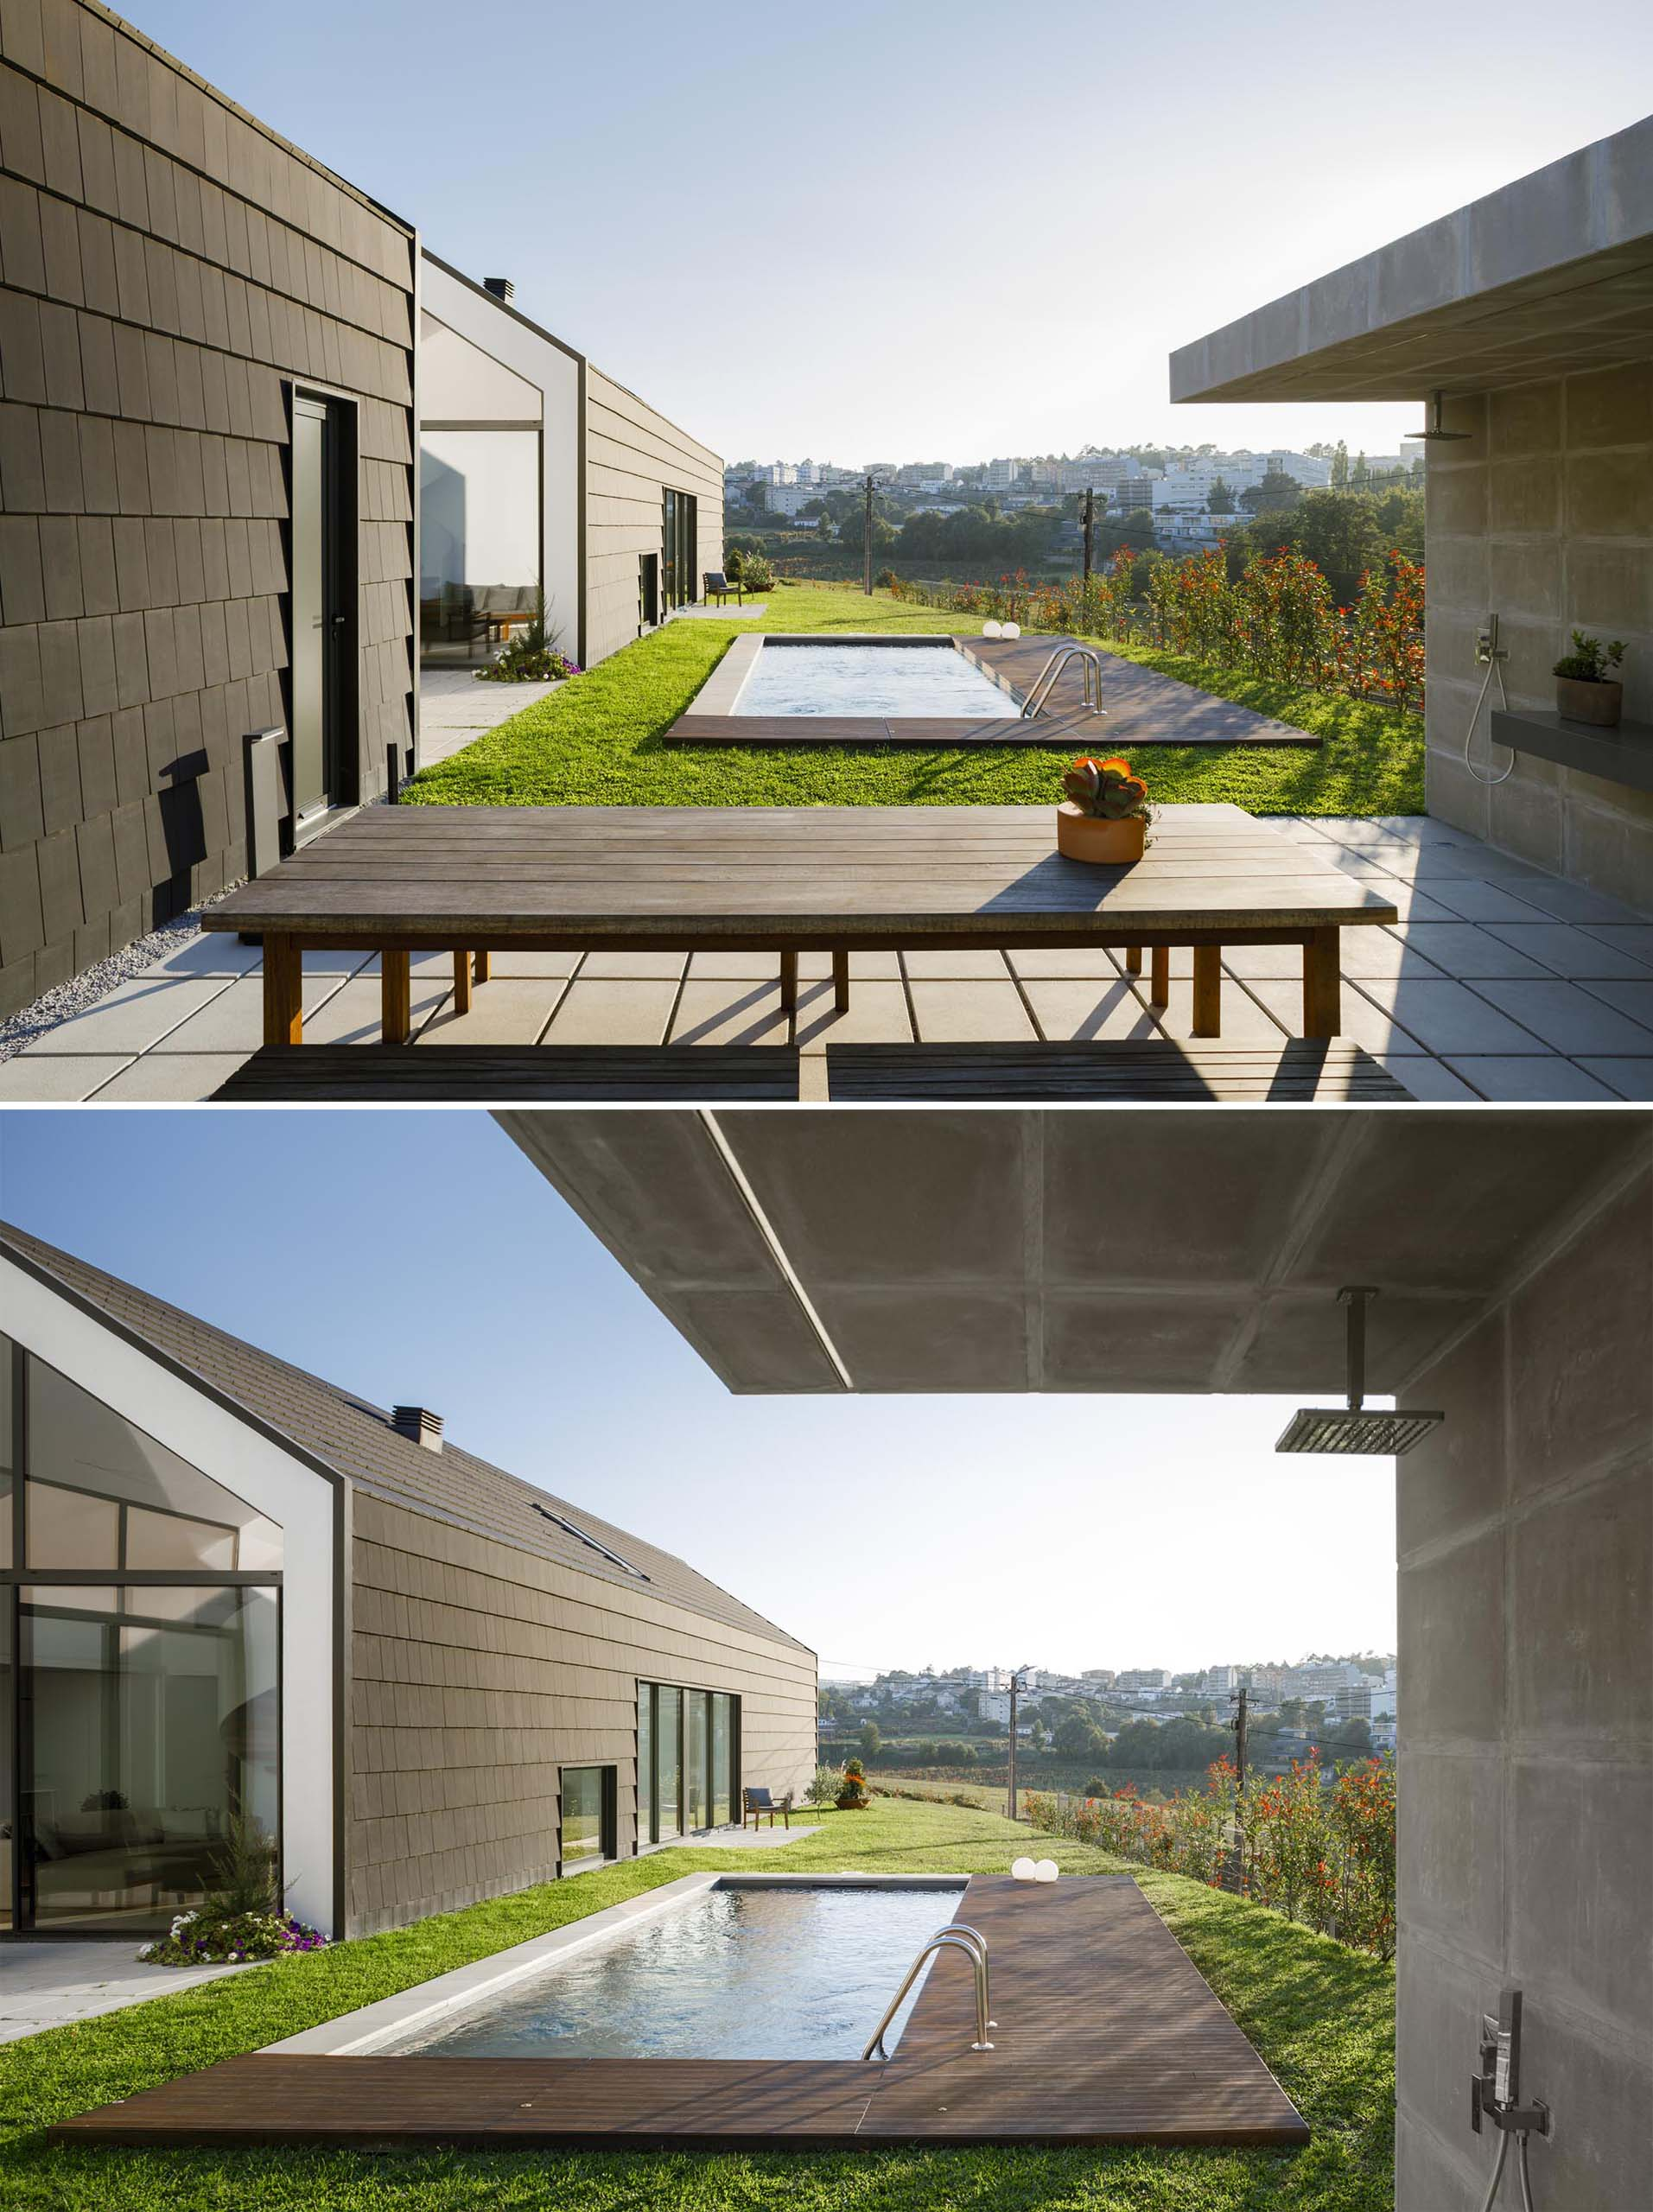 A modern swimming pool with a partial wood deck and an outdoor shower.